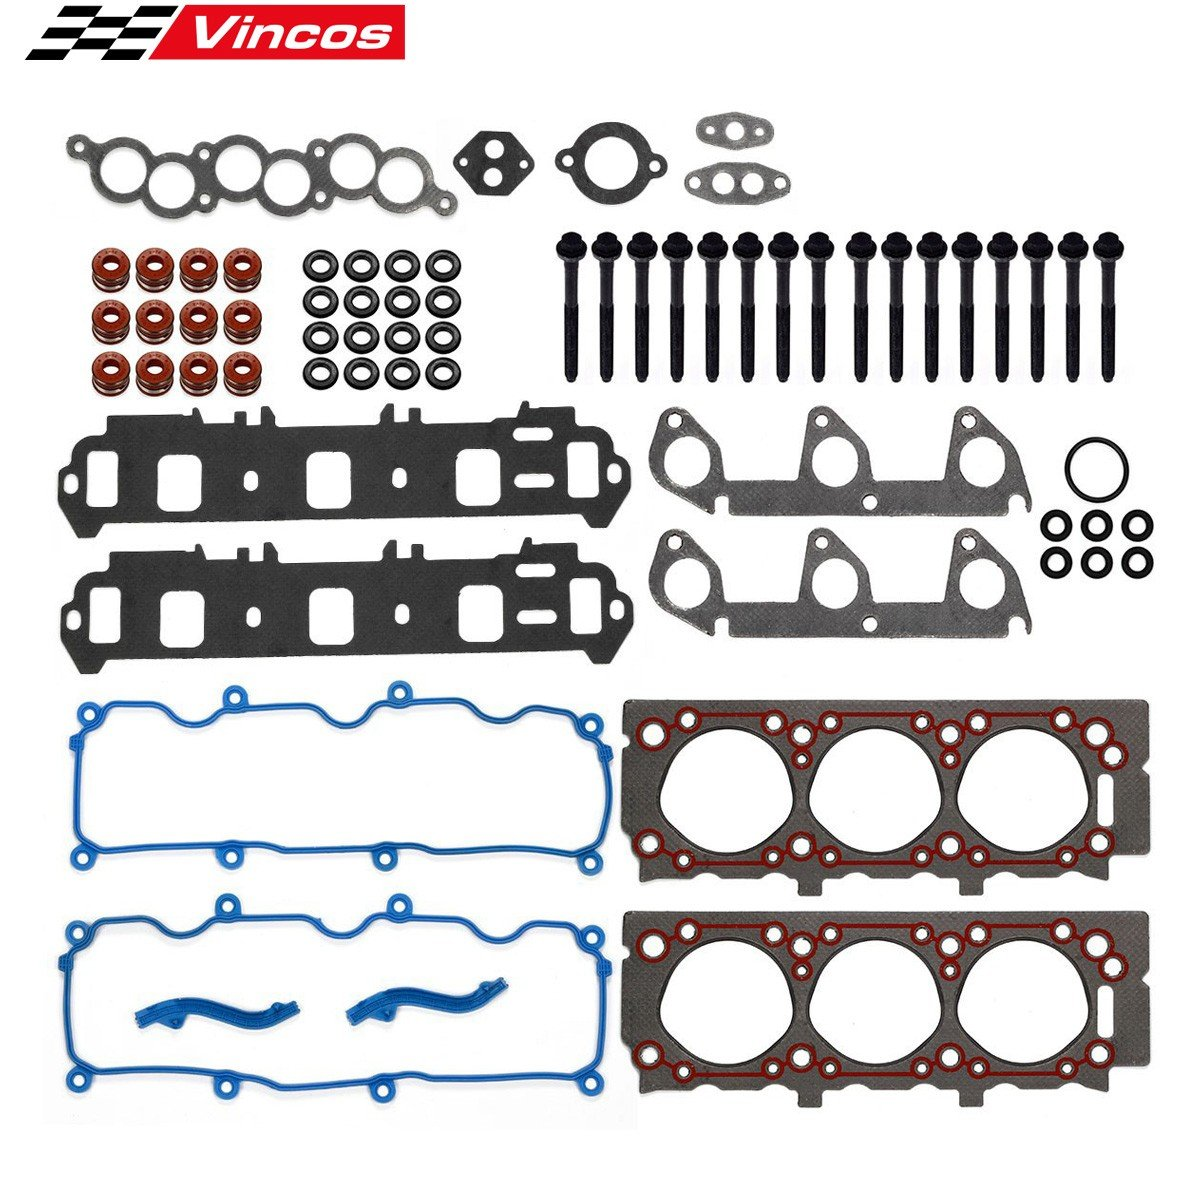 Cylinder Head Gasket with Bolts kit Fits for 1998 99 2000 01 Ford Ranger Mazda 3.0L